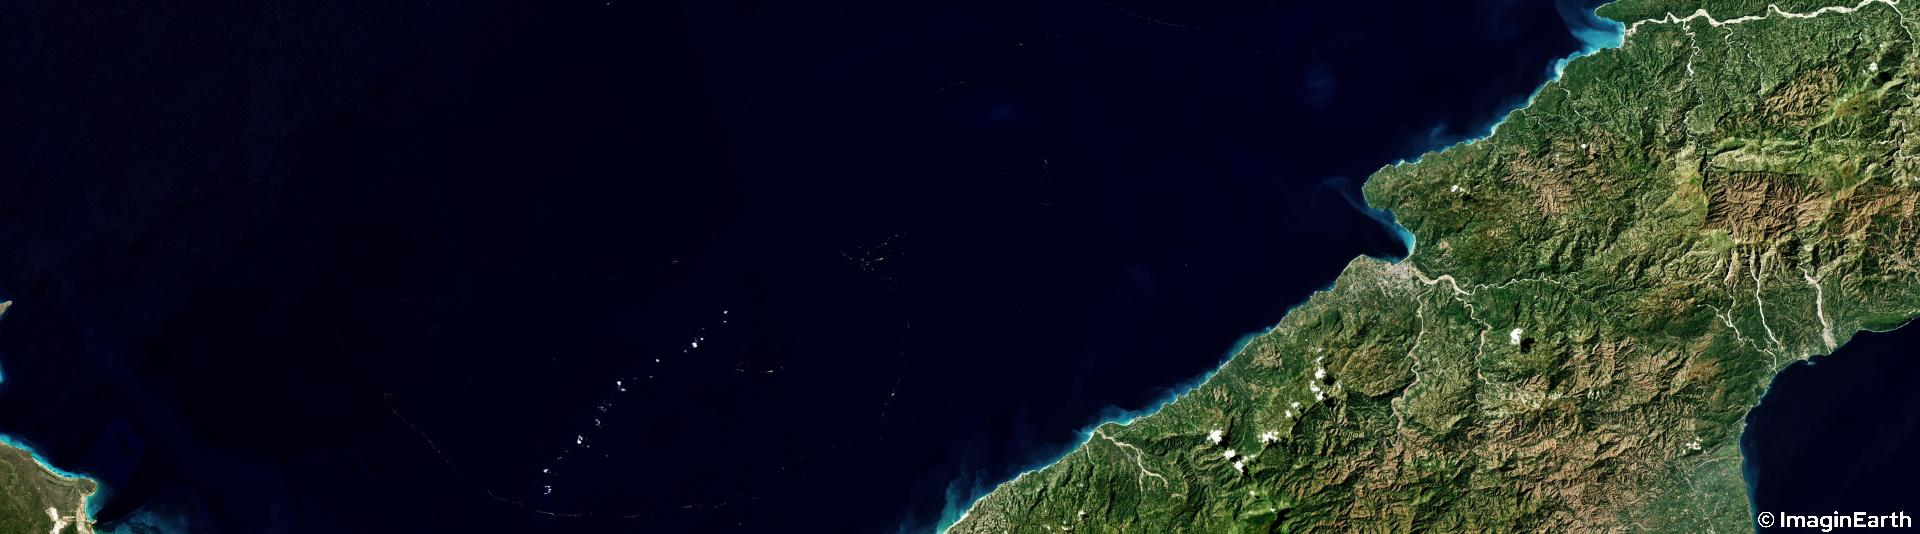 voyager ile, haïti, photo satellite